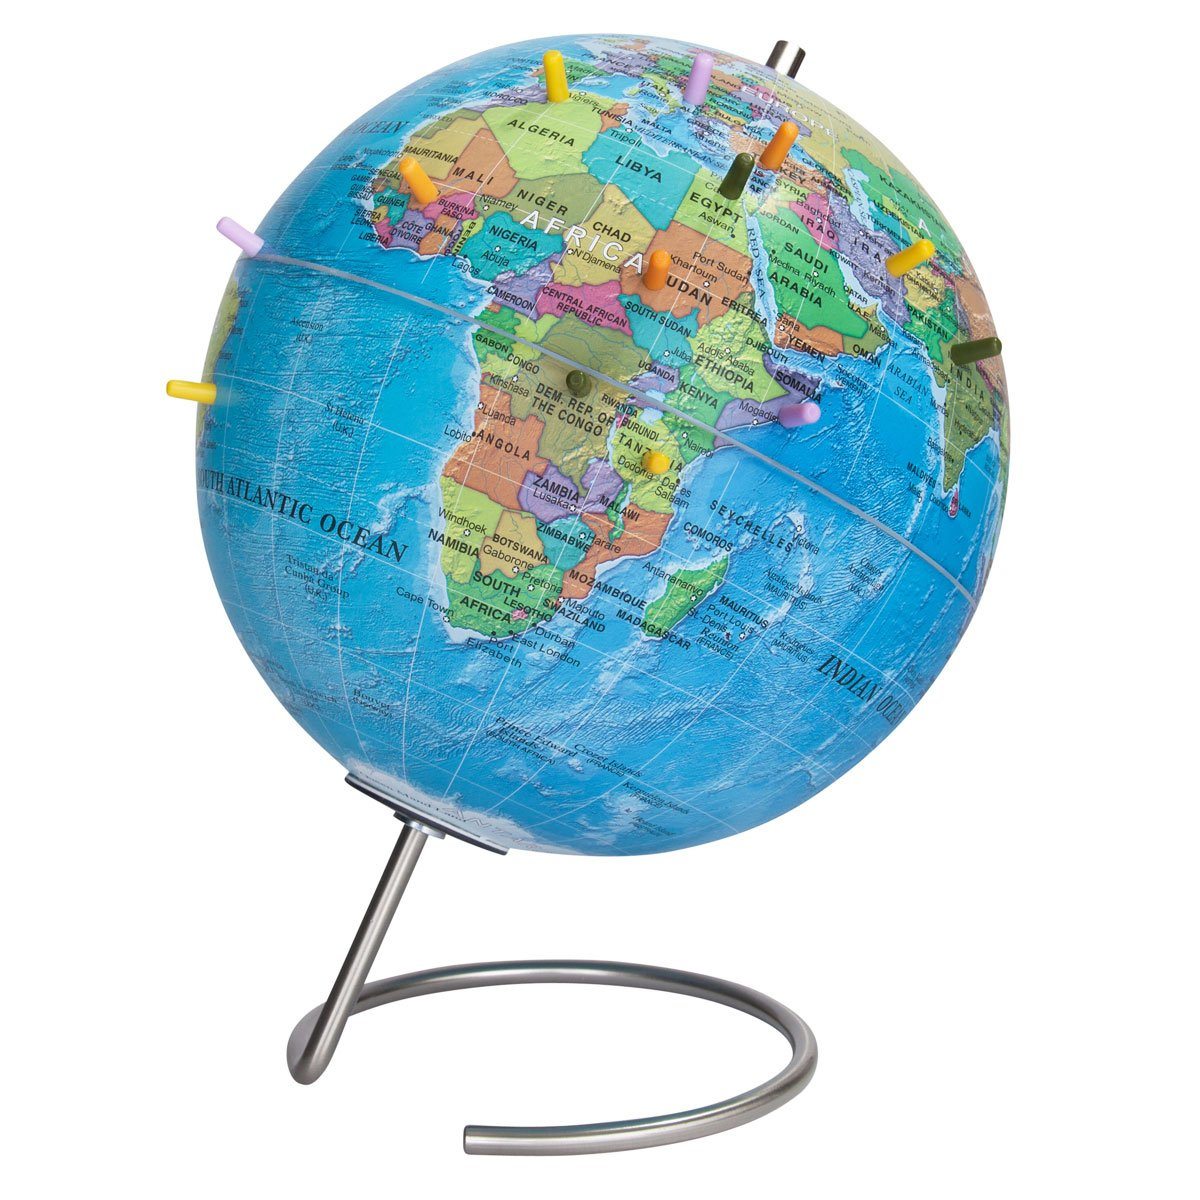 Waypoint Geographic Magneglobe Magnetic up-to-Date World Globe with Stand - Includes 32 Magnetic Pins for Marking Travels & Fun Points of Interest (Blue Ocean) by Waypoint Geographic (Image #1)